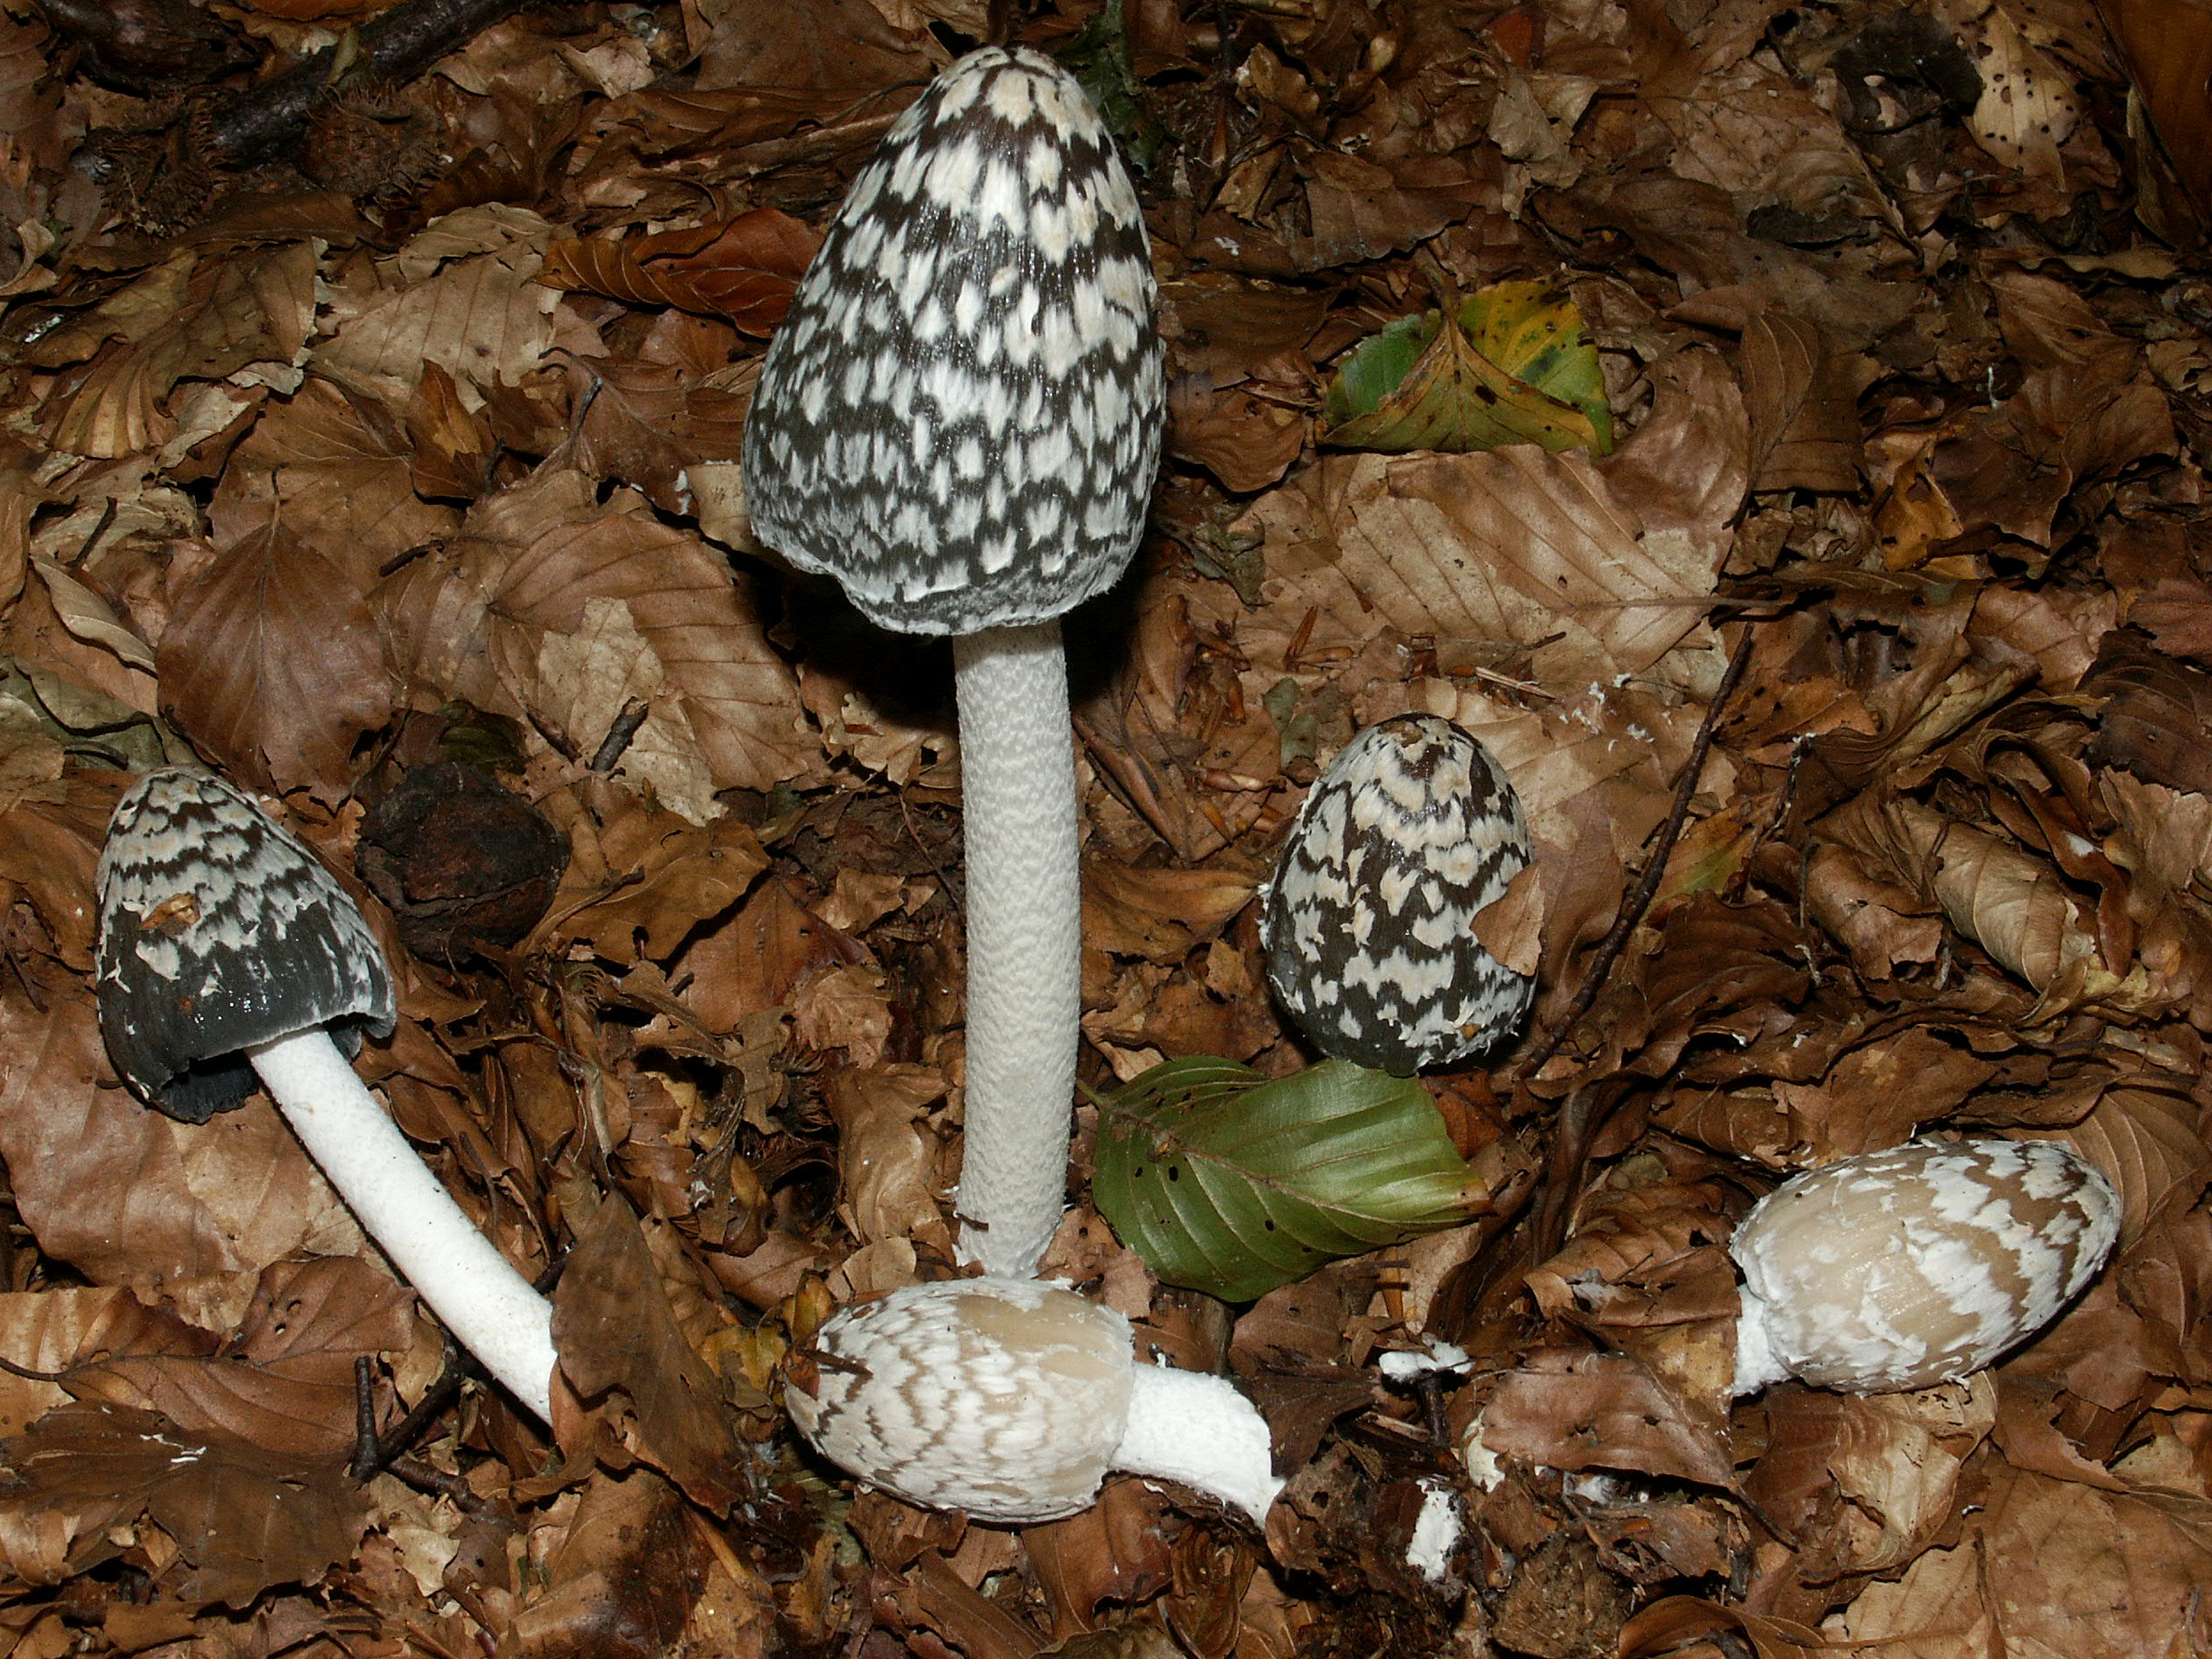 Coprinus picaceus